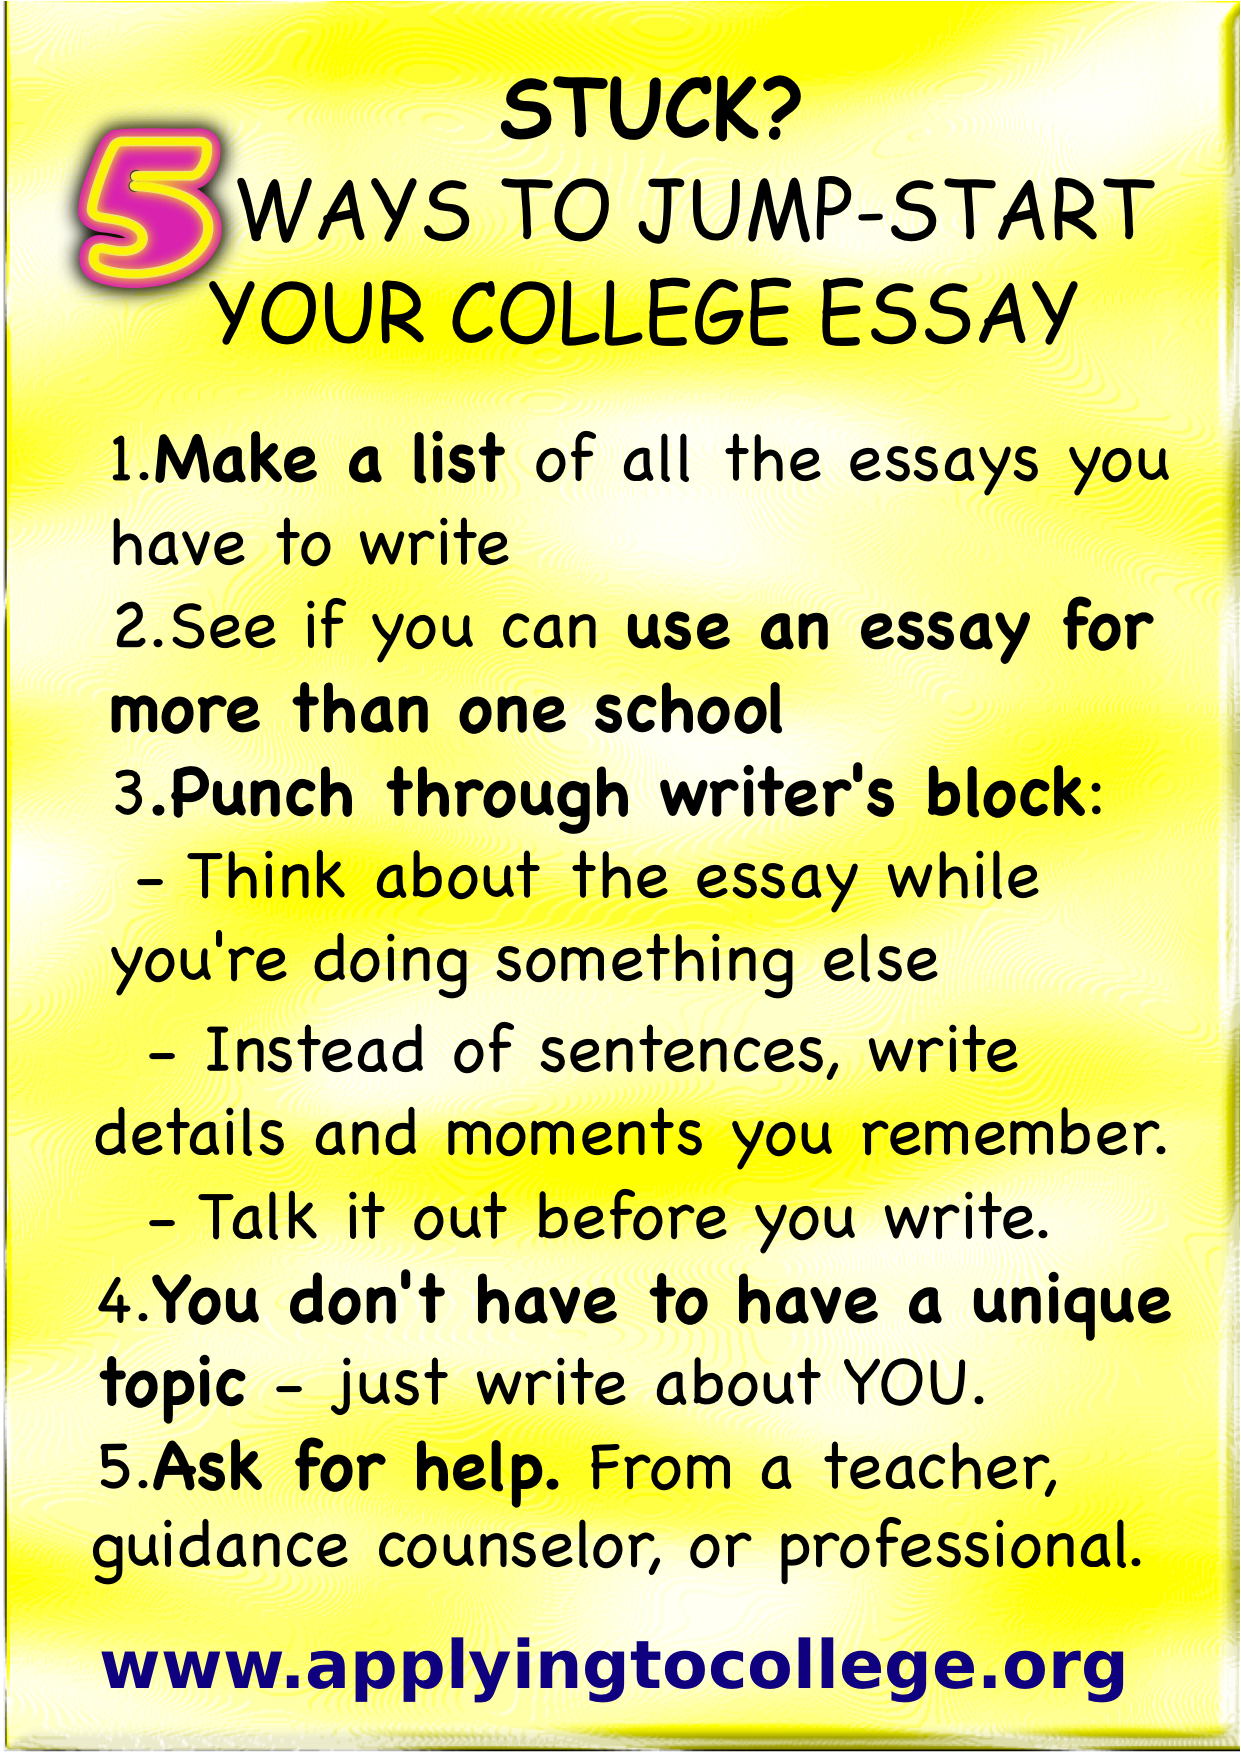 College application essay service to start